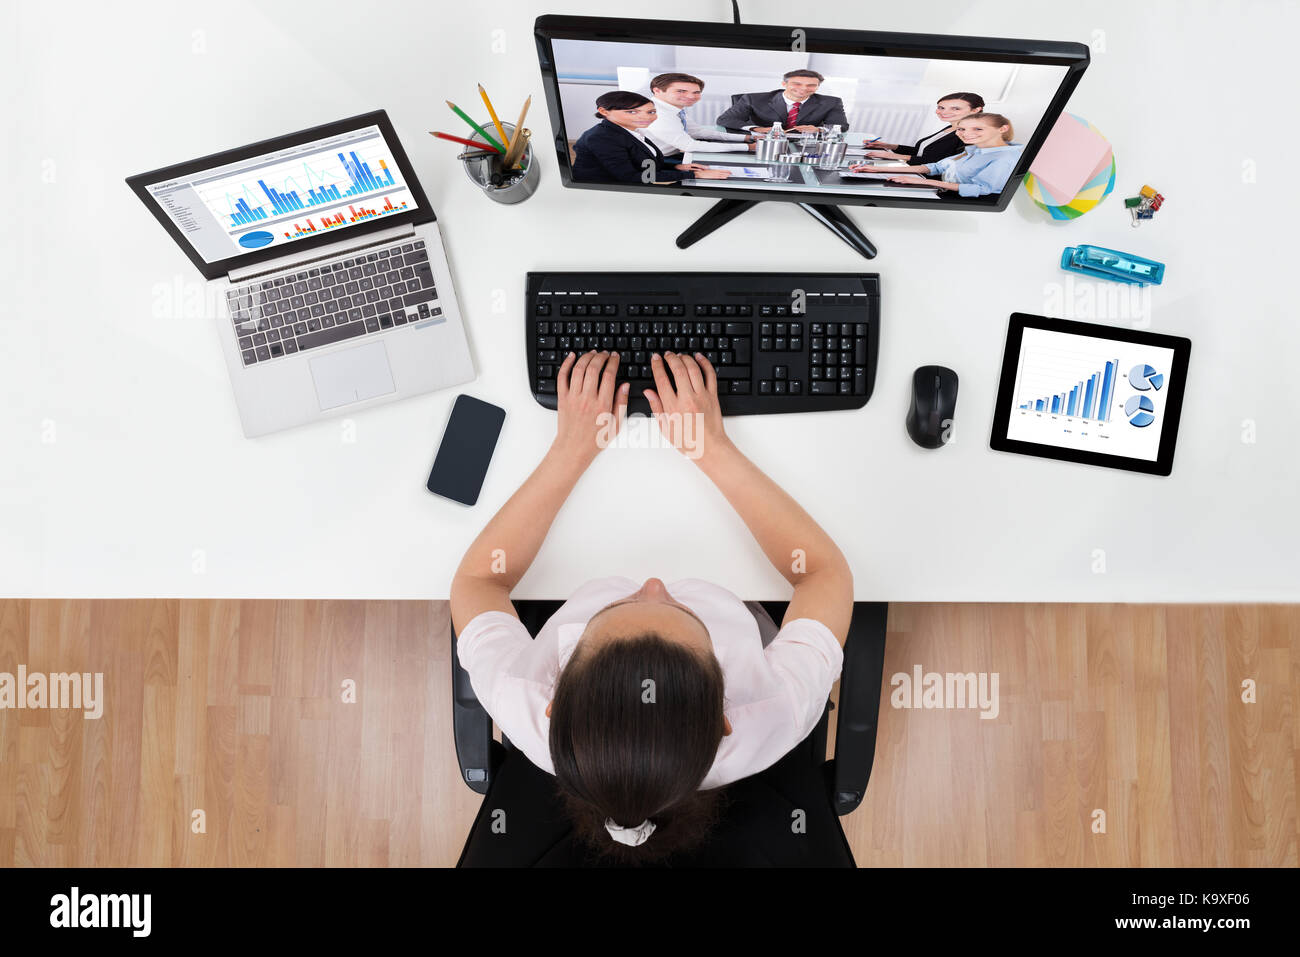 Young Businesswoman Videoconferencing With Co-workers On Computers At Desk - Stock Image